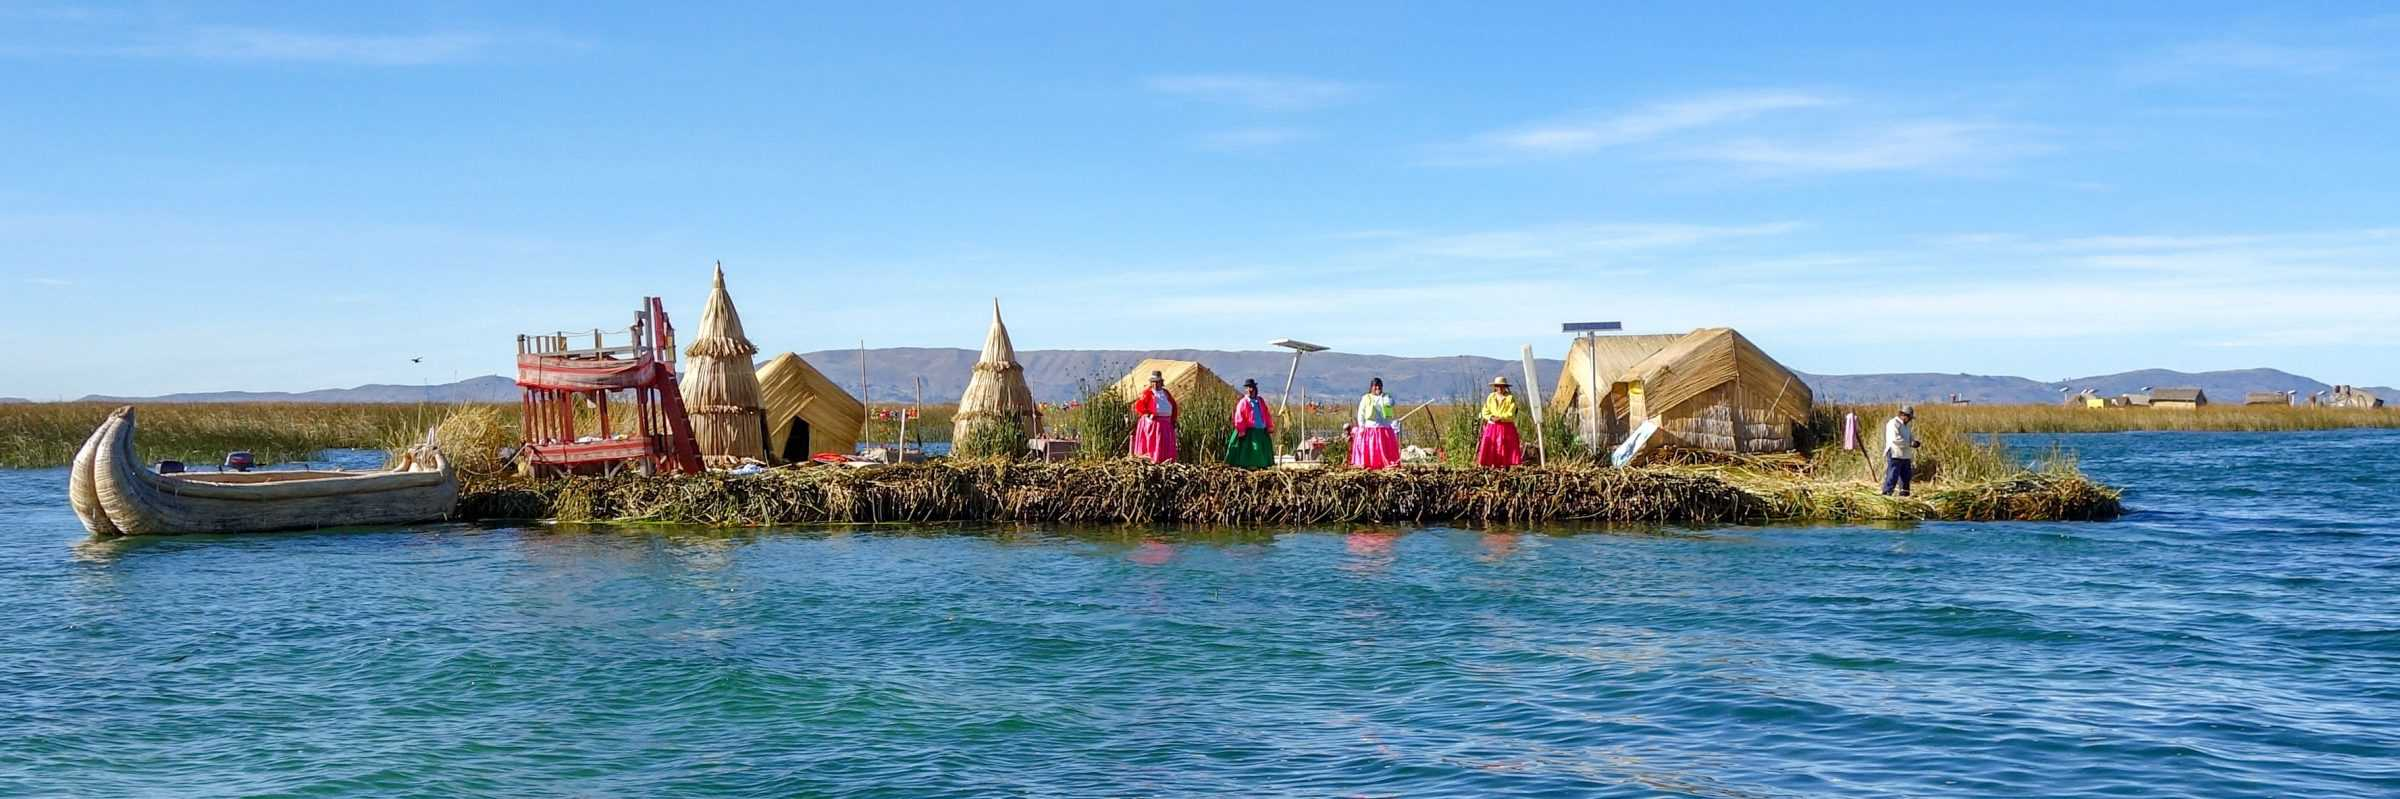 Reed Island on Lake Titicaca, Peru